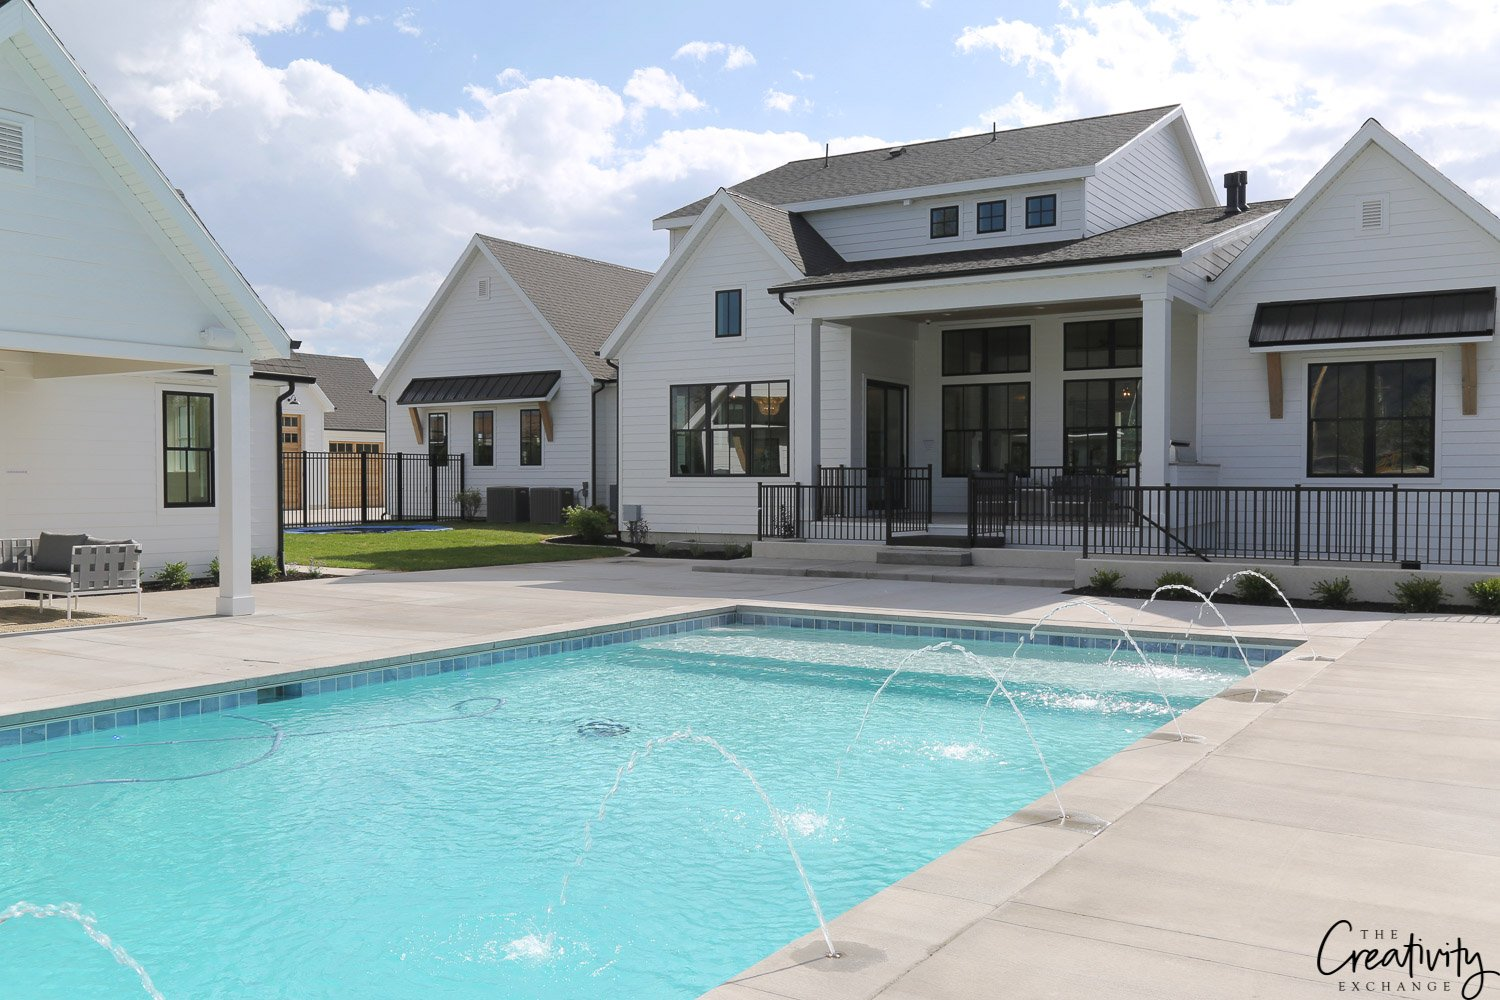 Modern Farmhouse Exterior with Pool. Millhaven Homes